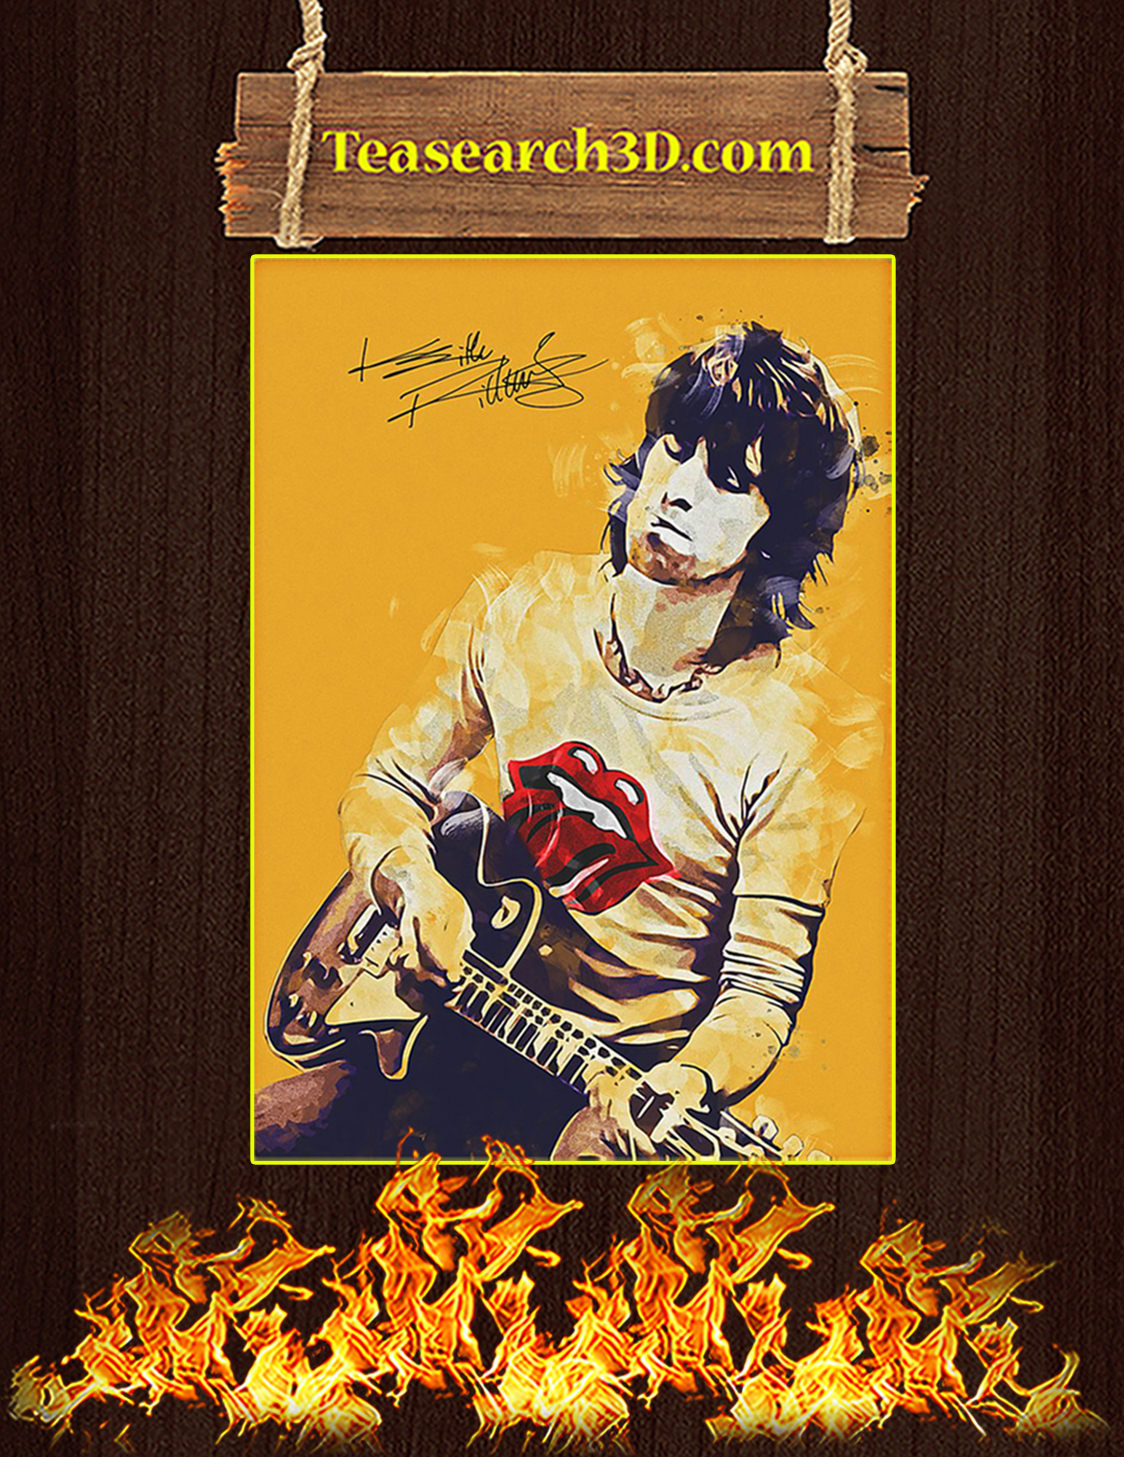 Legend keith richards signature poster A3